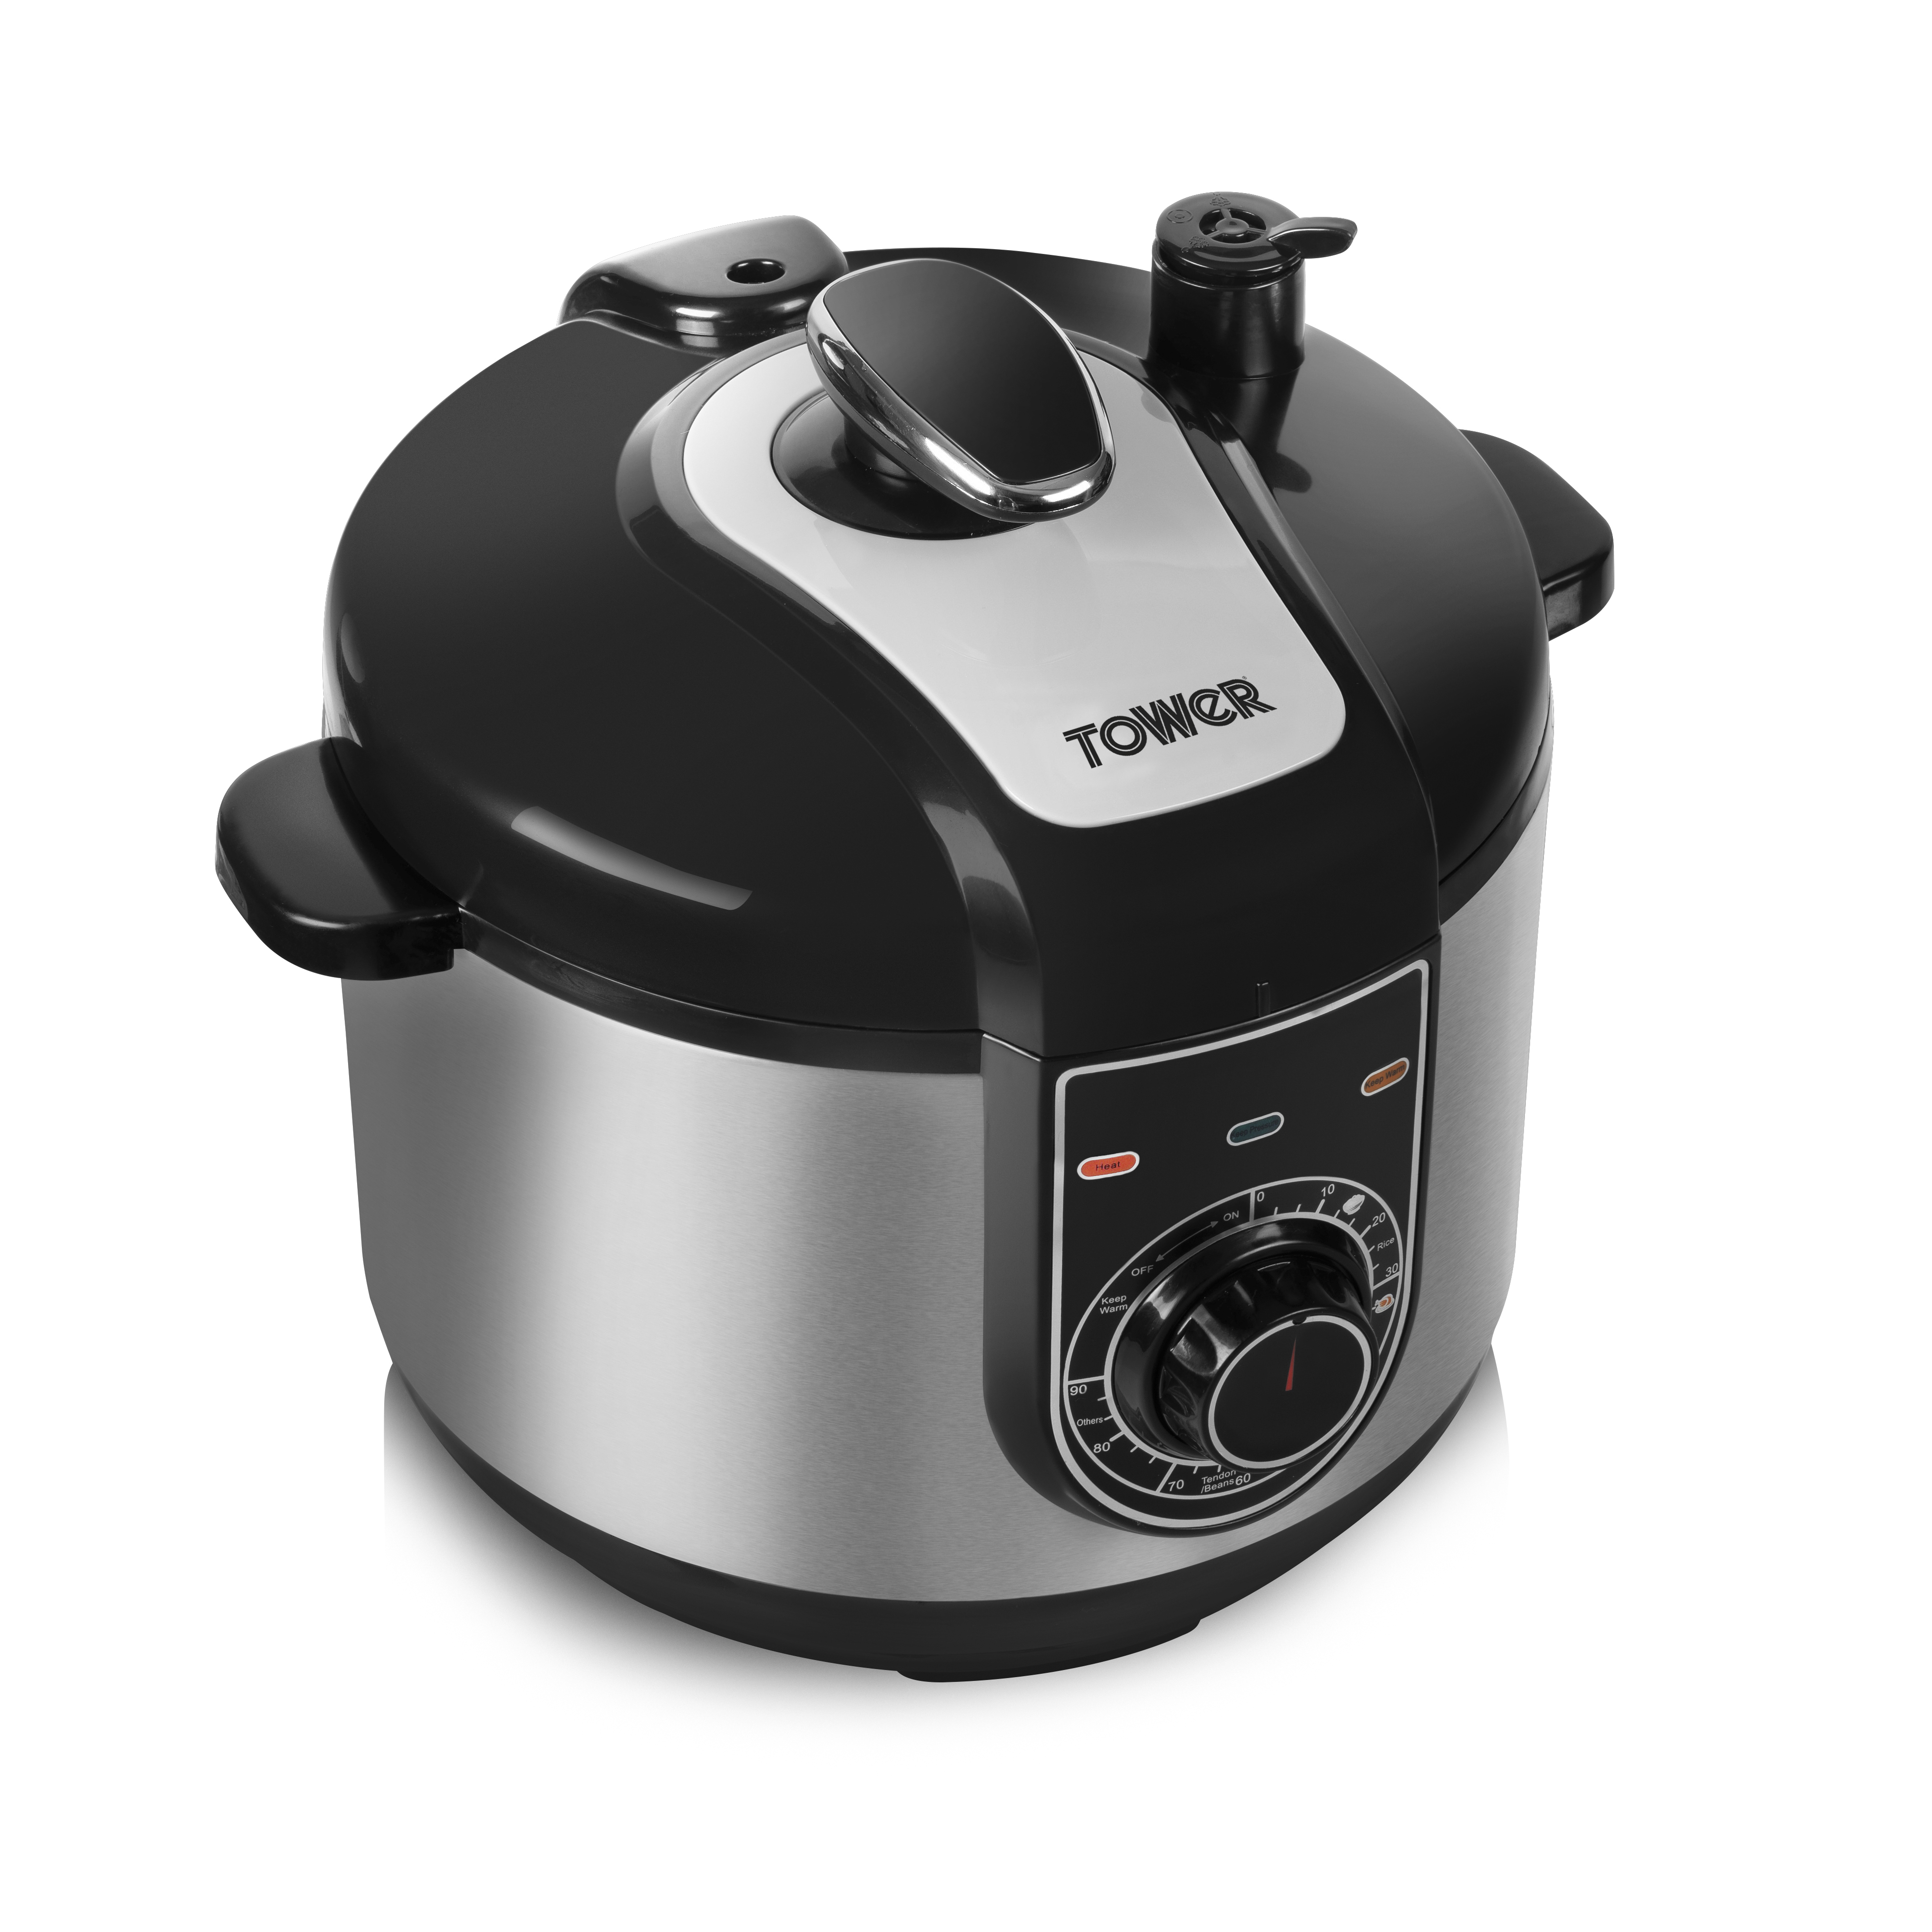 Tower 5L Pressure Cooker - S/Steel No Colour